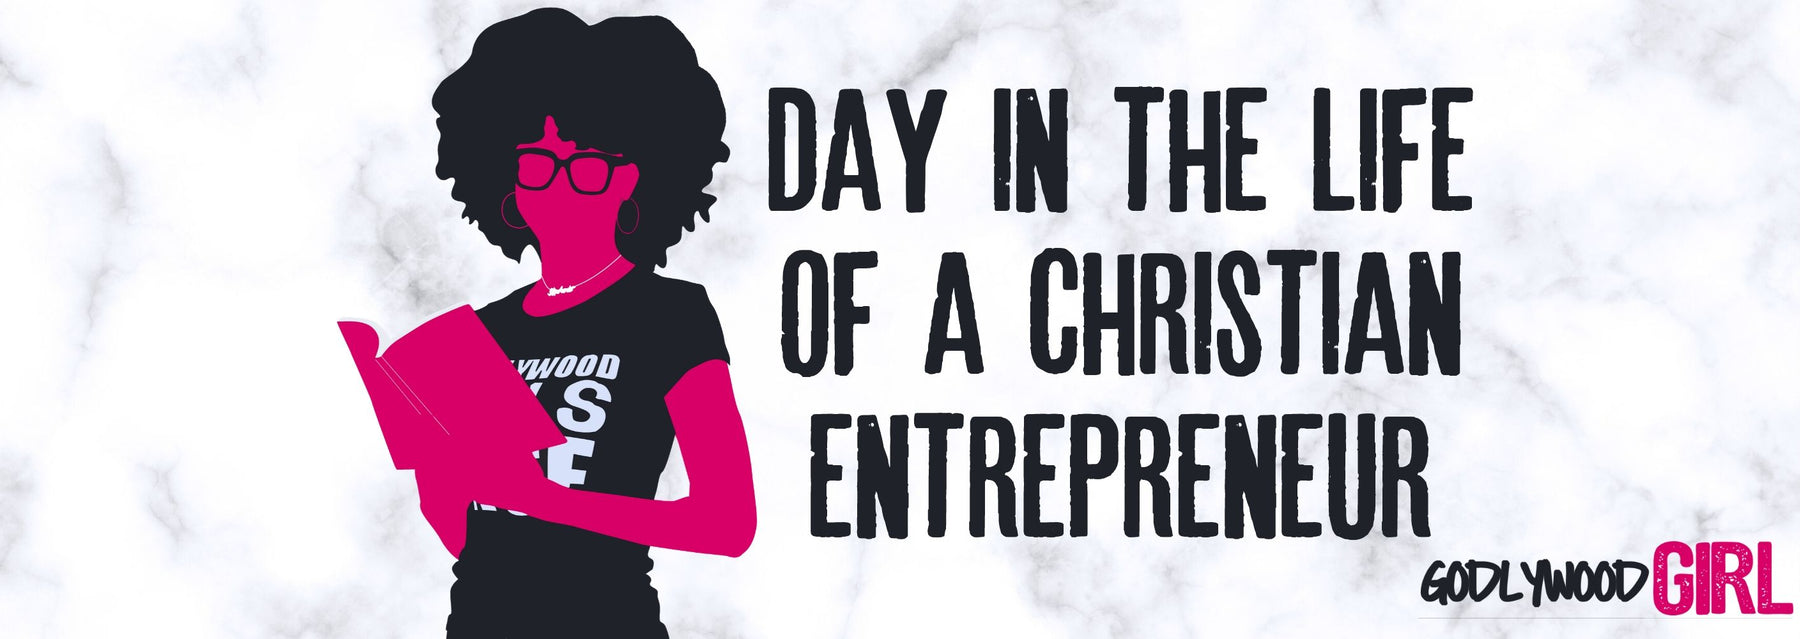 Day In The Life Of A Christian Entrepreneur Ep.81 | School Of Purpose 2.0 Revamp Part 2